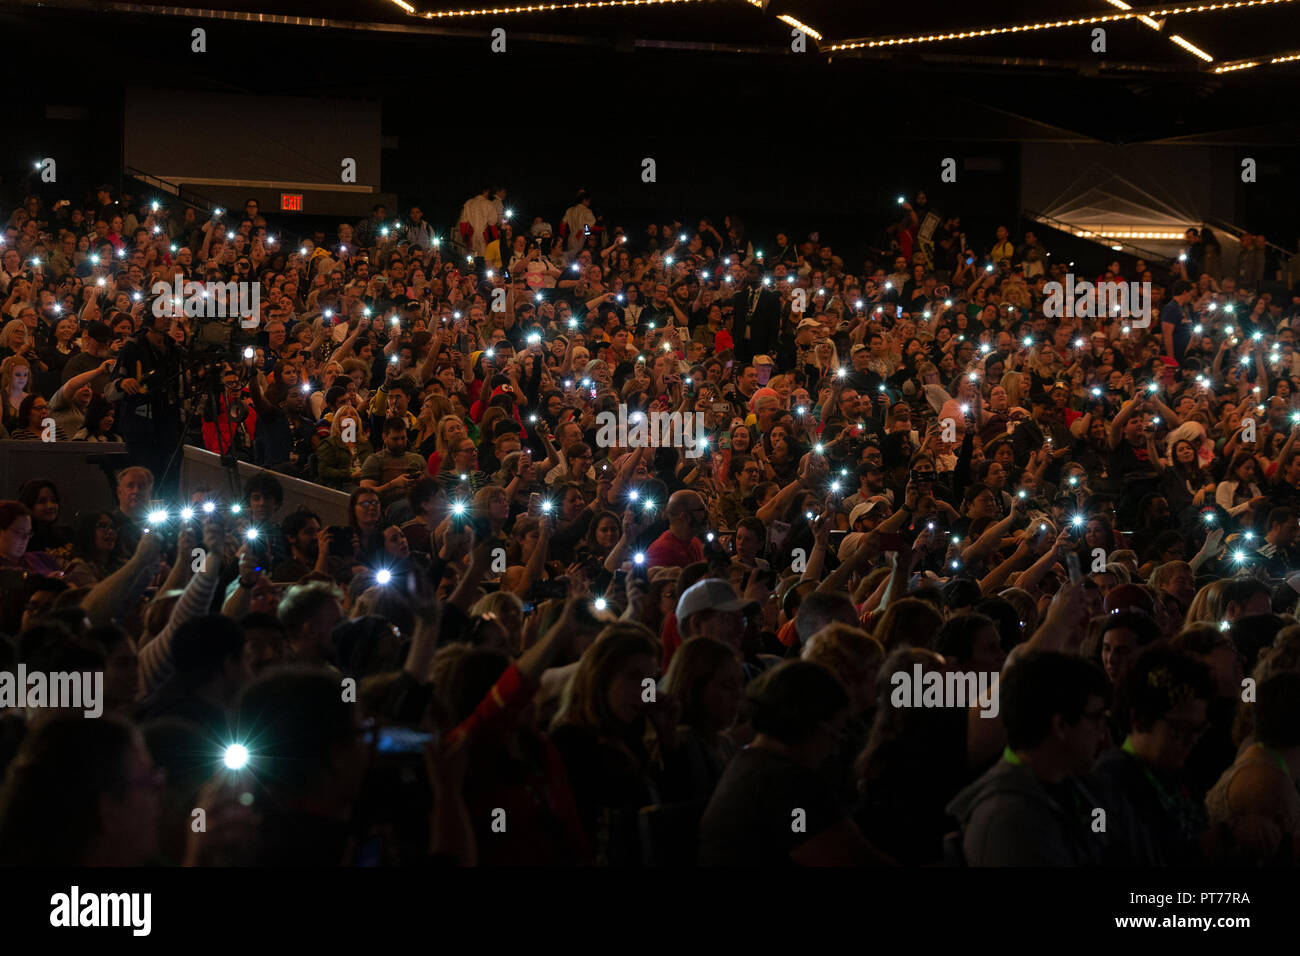 New York, NY - October 6, 2018: Atmosphere during Amazon Prime Good Omens panel at New York Comic Con at Hulu Theater at Madison Square Garden - Stock Image